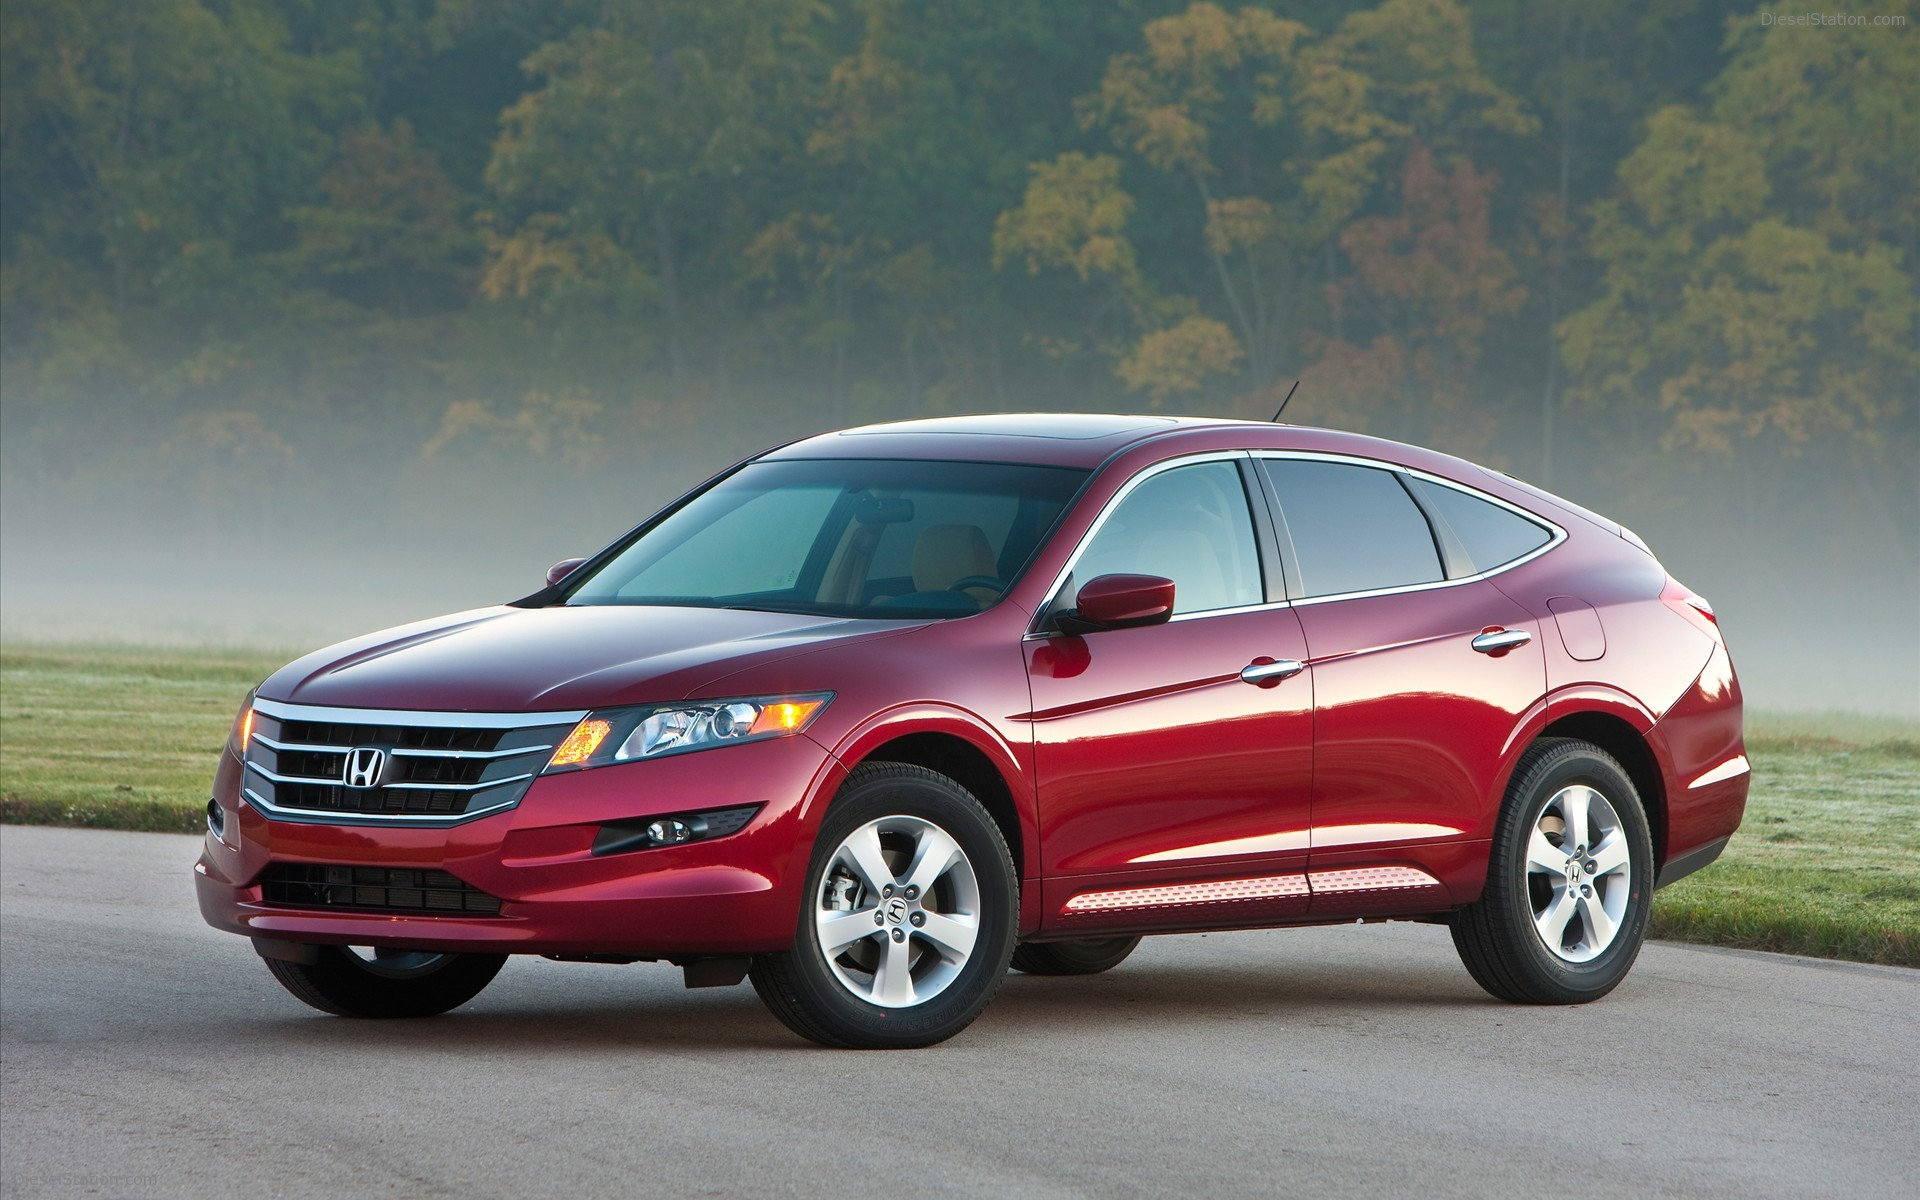 Honda Accord Crosstour #7